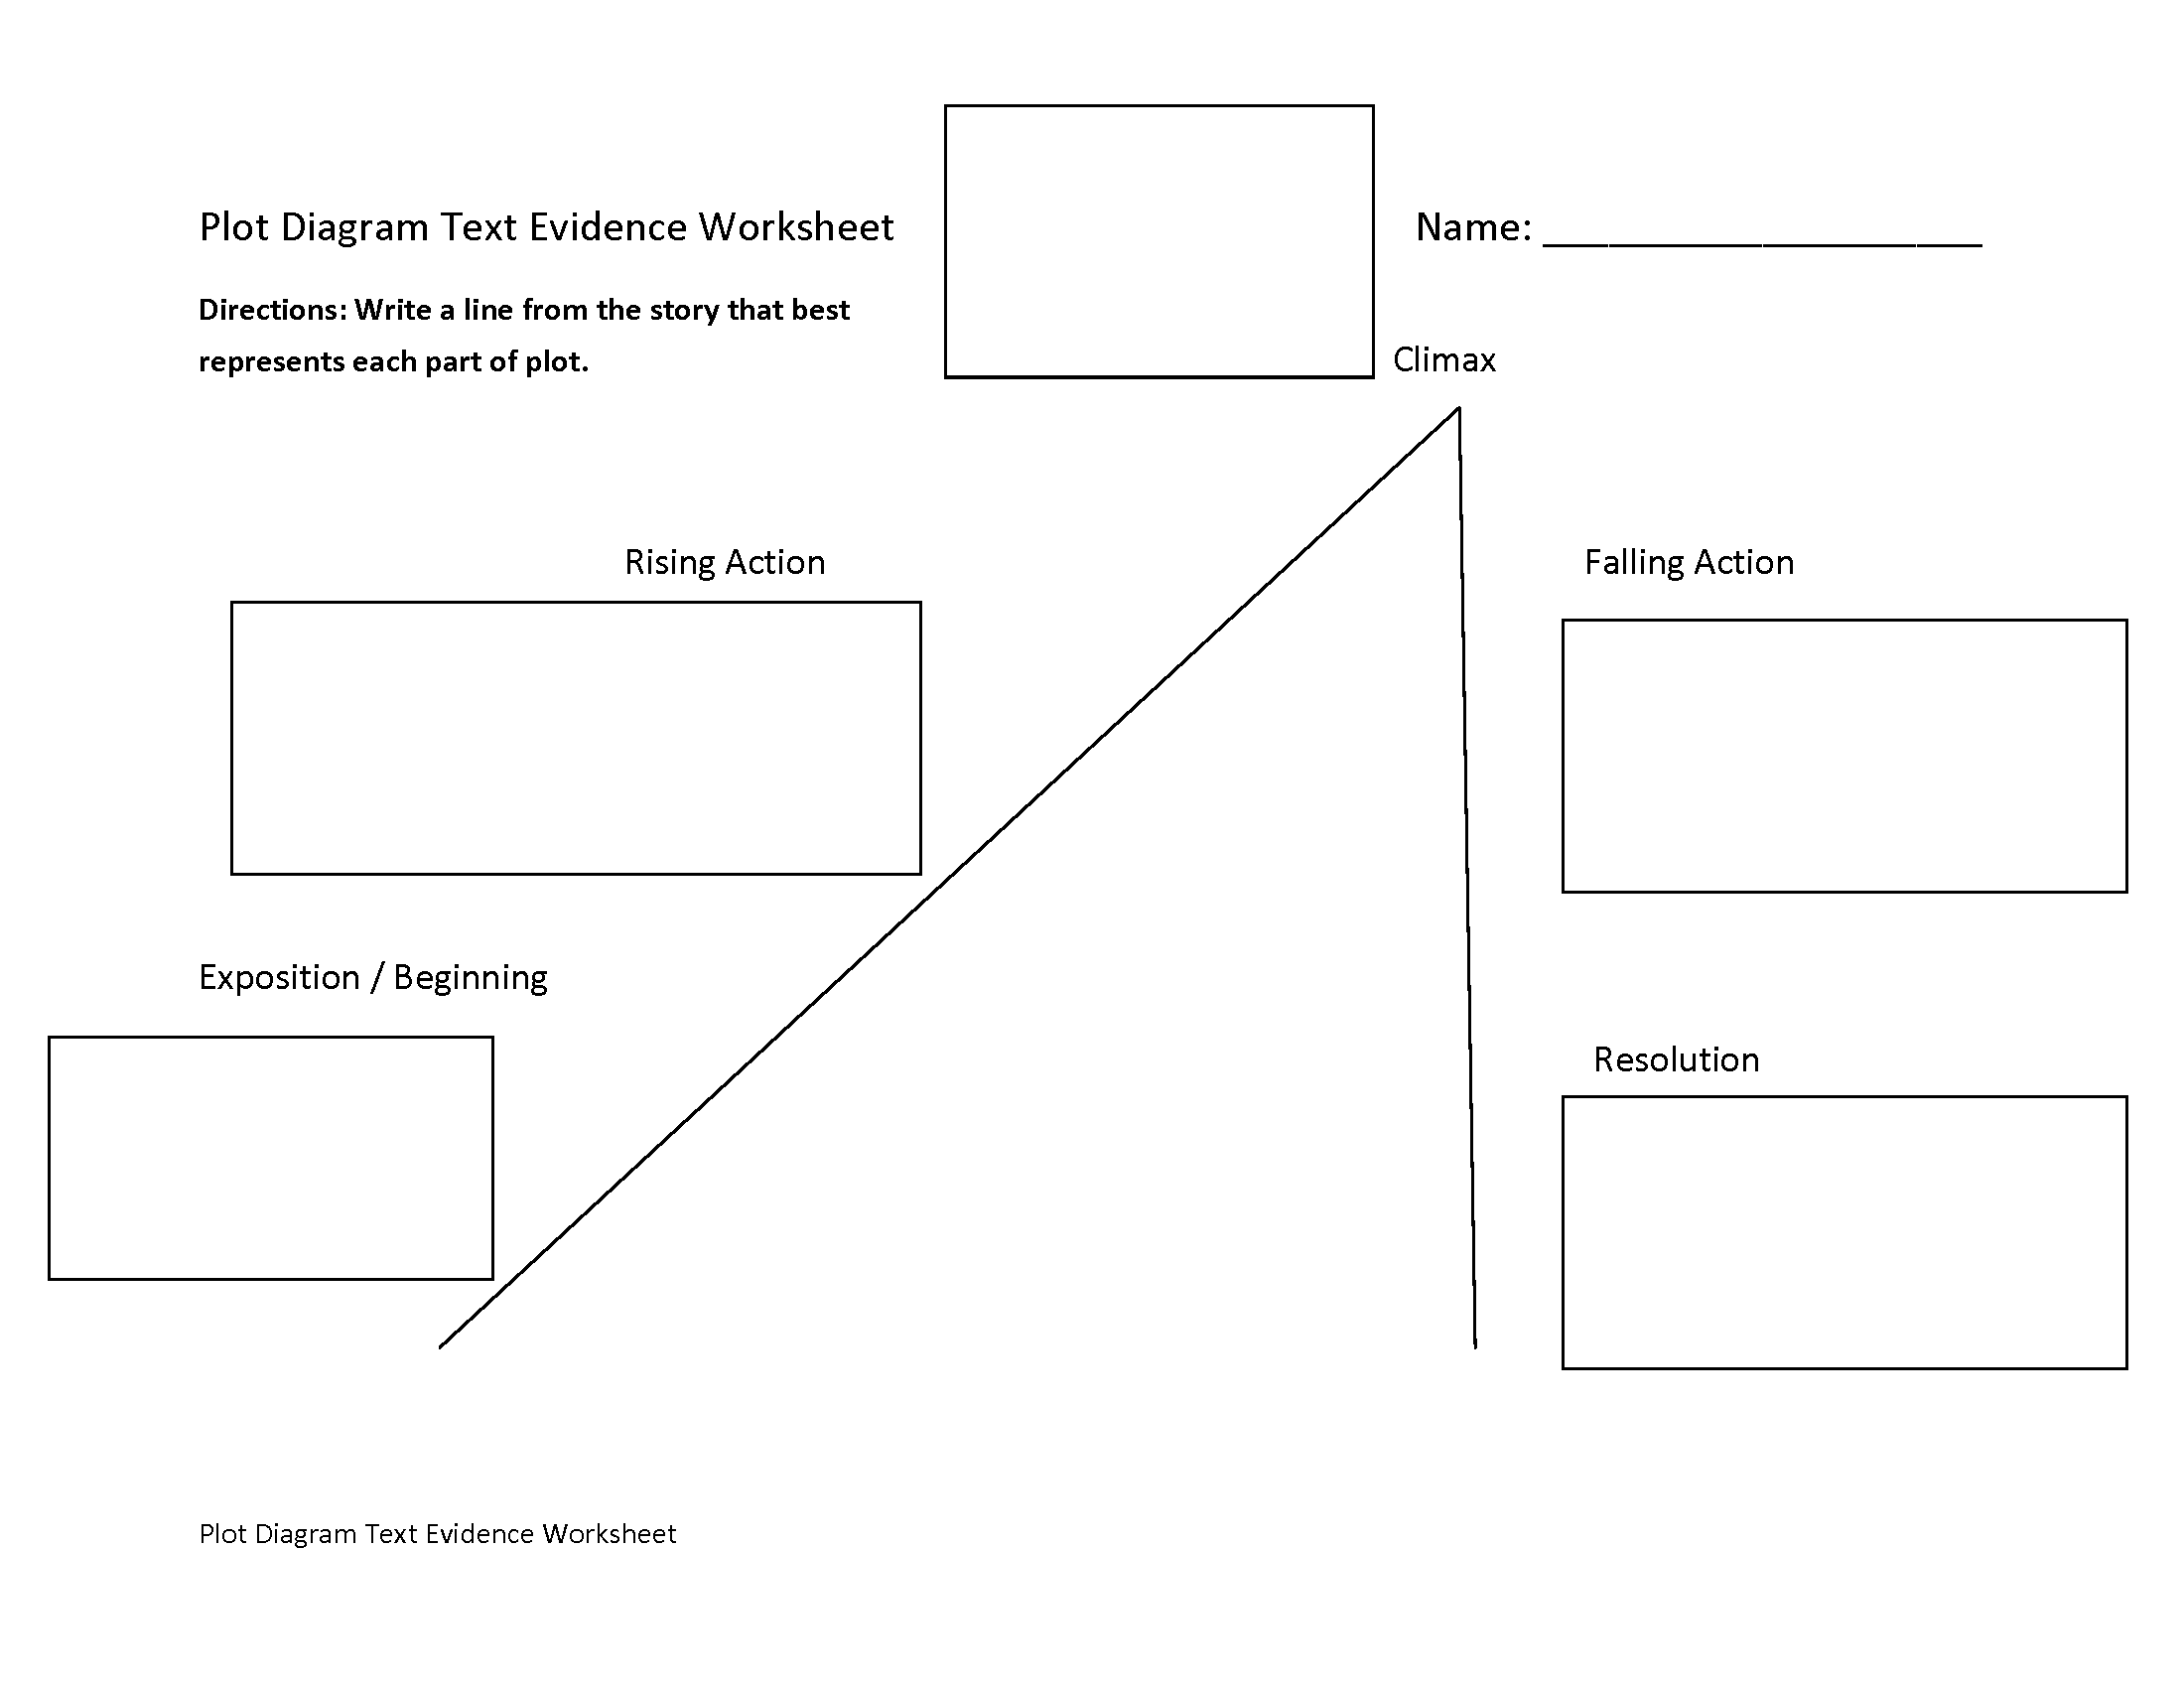 Text Evidence Worksheets | Plot Diagram Text Evidence Worksheets